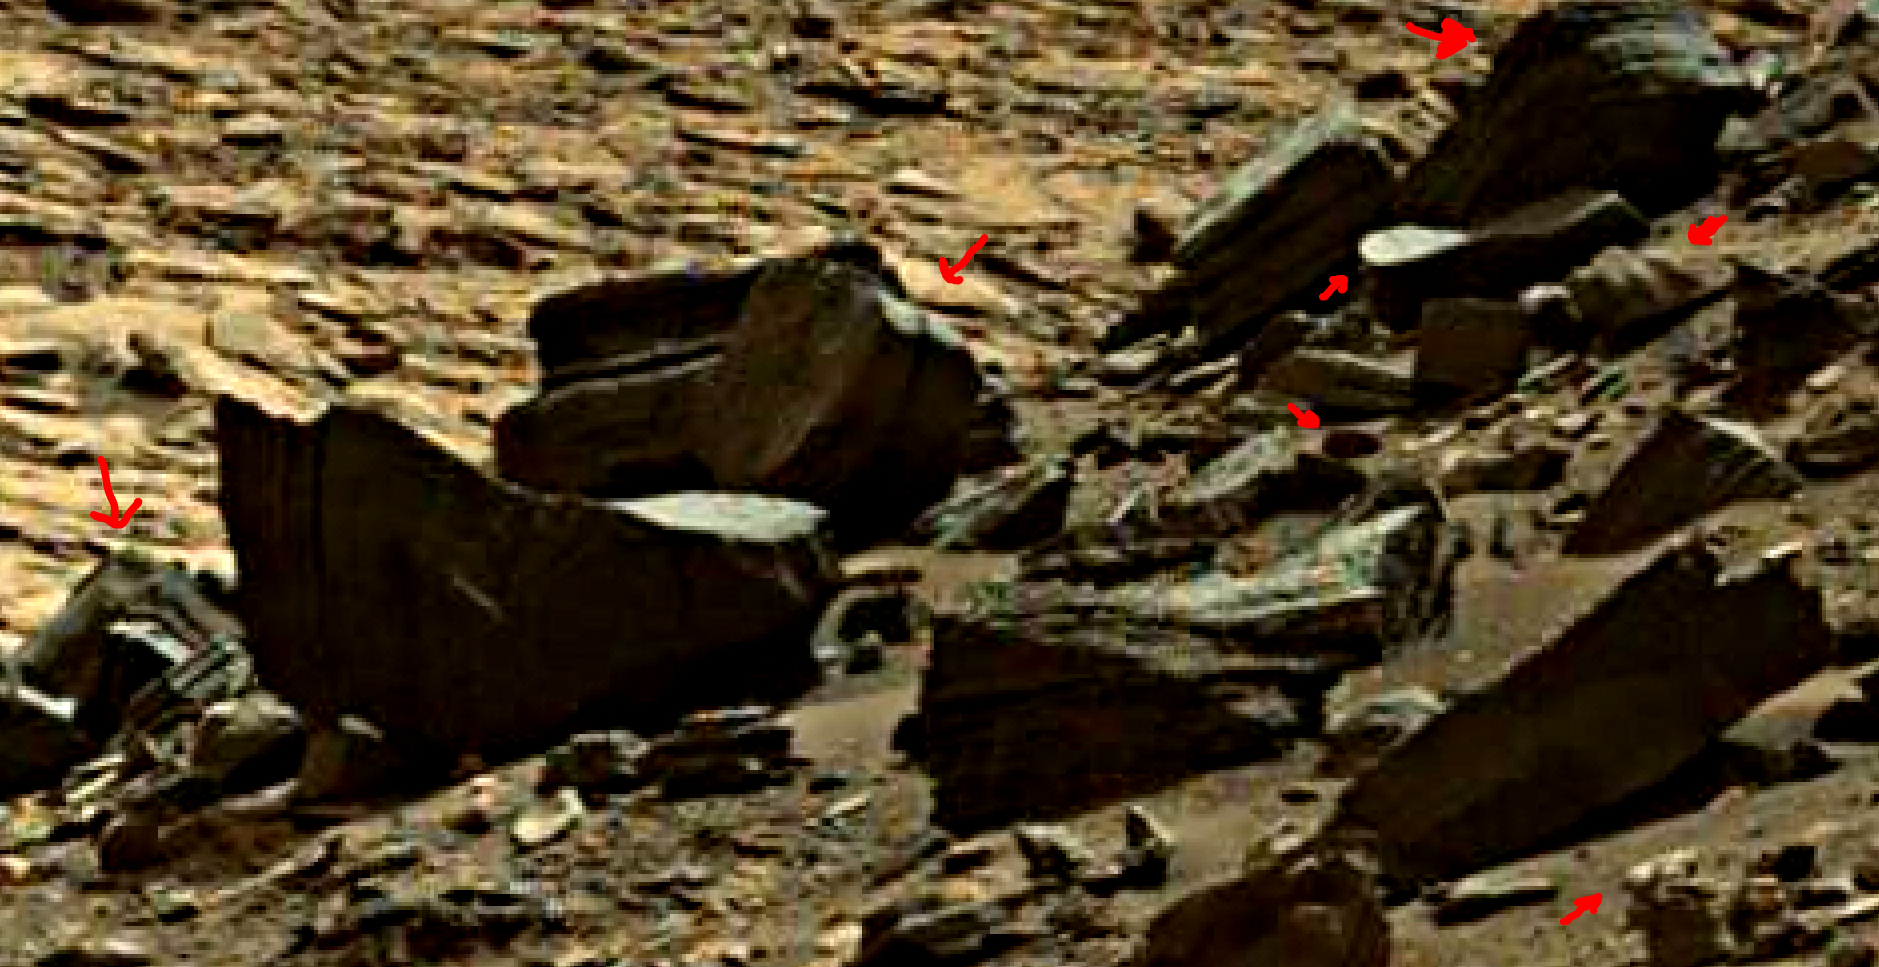 mars-sol-1452-anomaly-artifacts-2a-was-life-on-mars